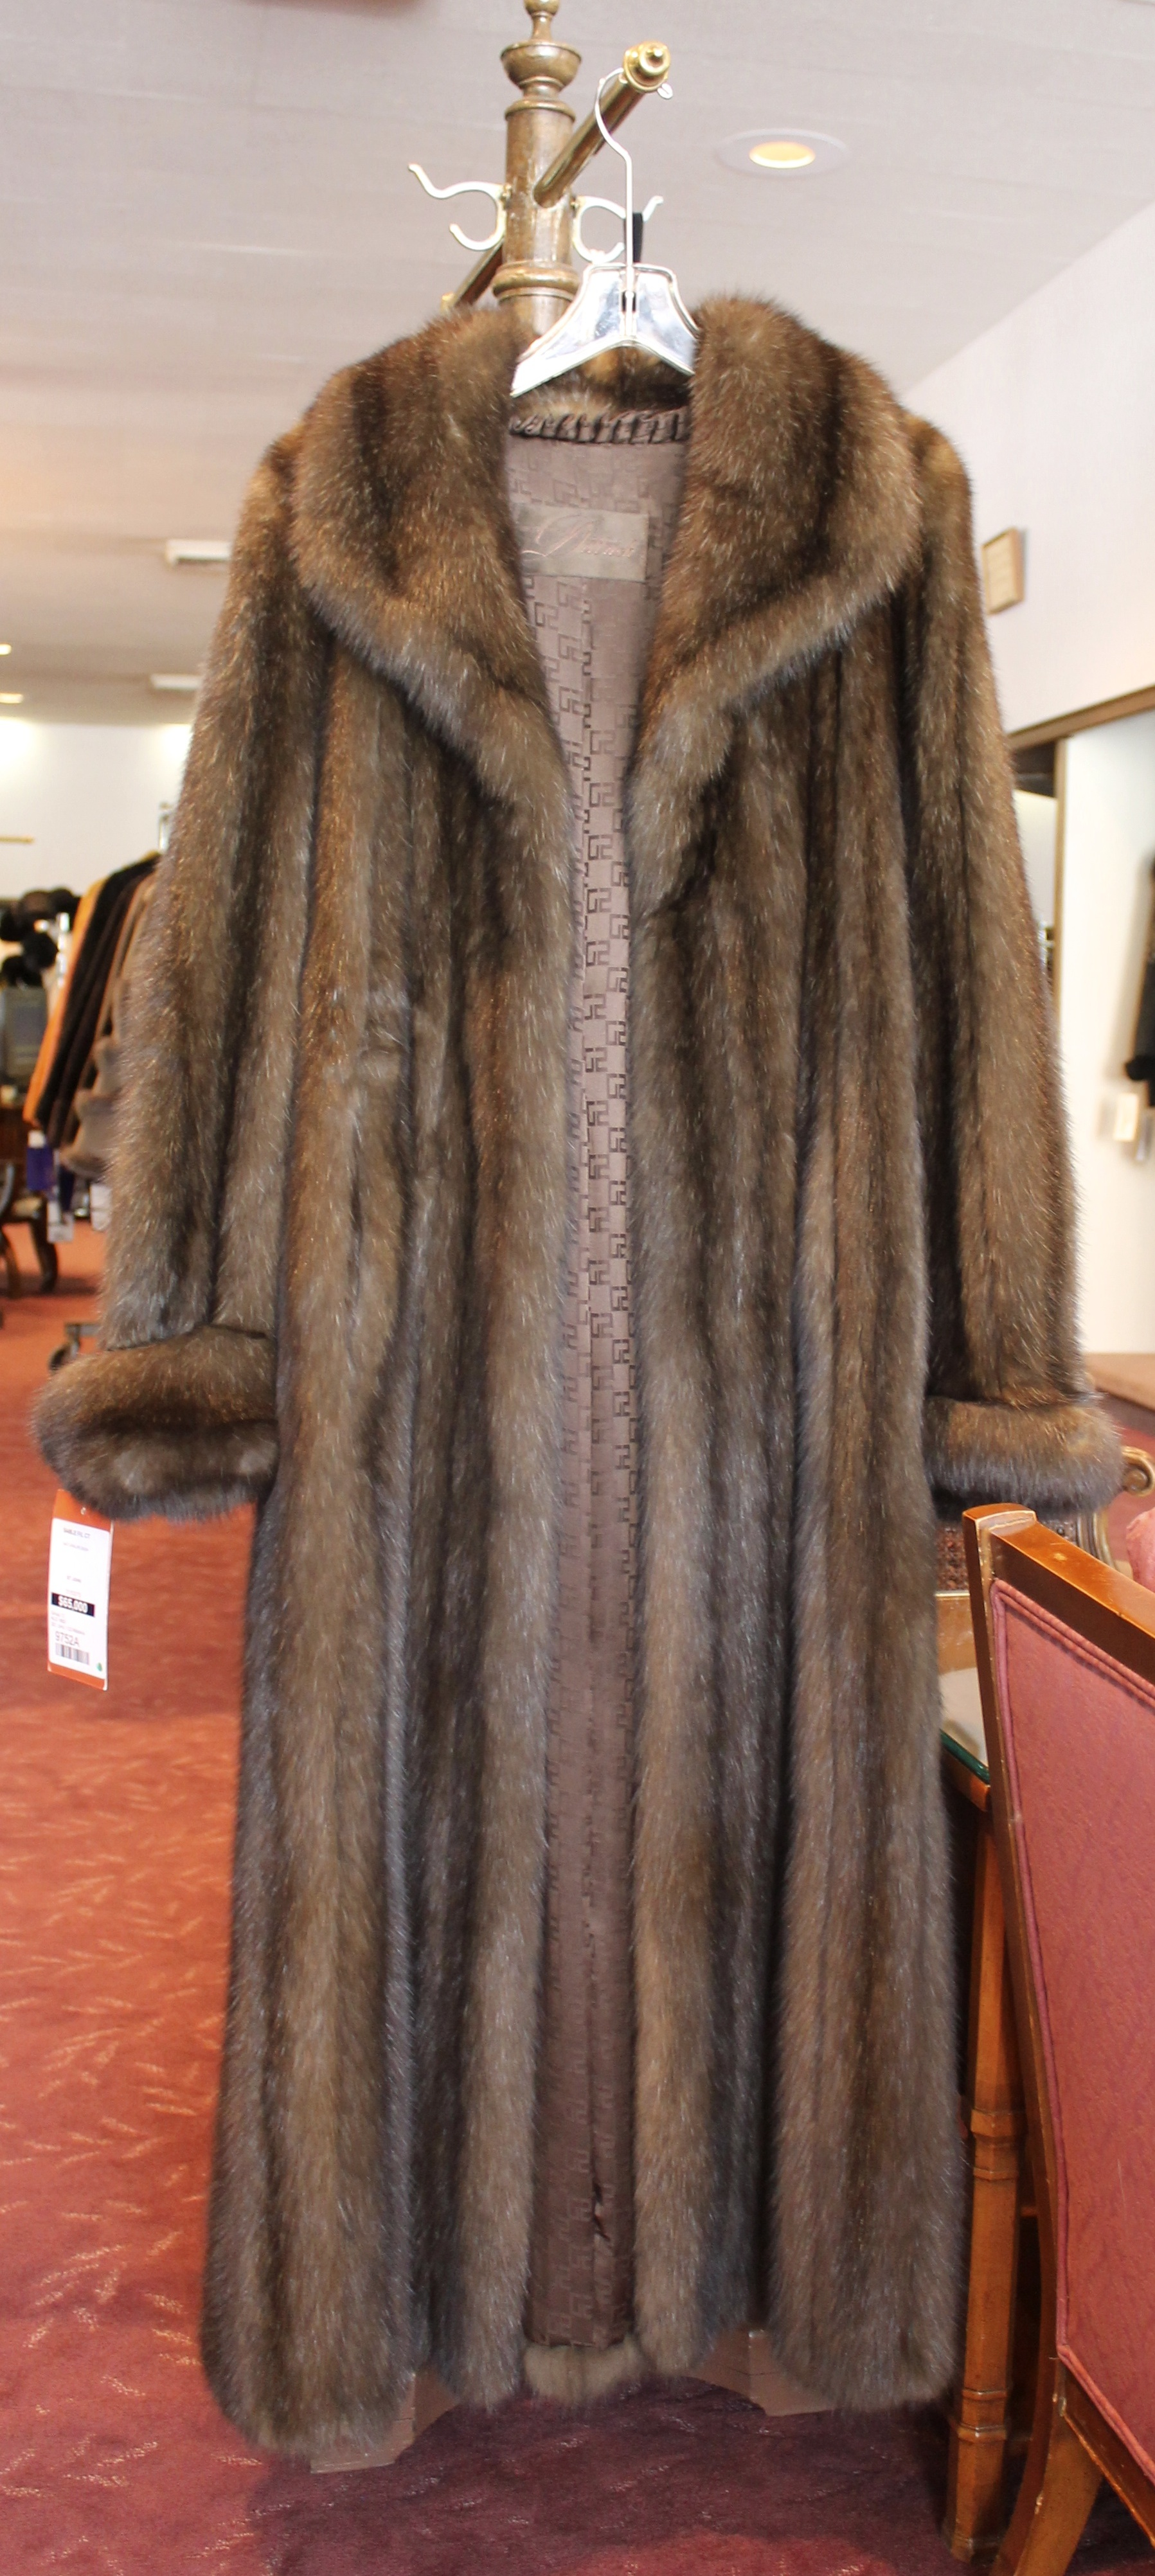 fischer fur costly coat pix ou news bureau